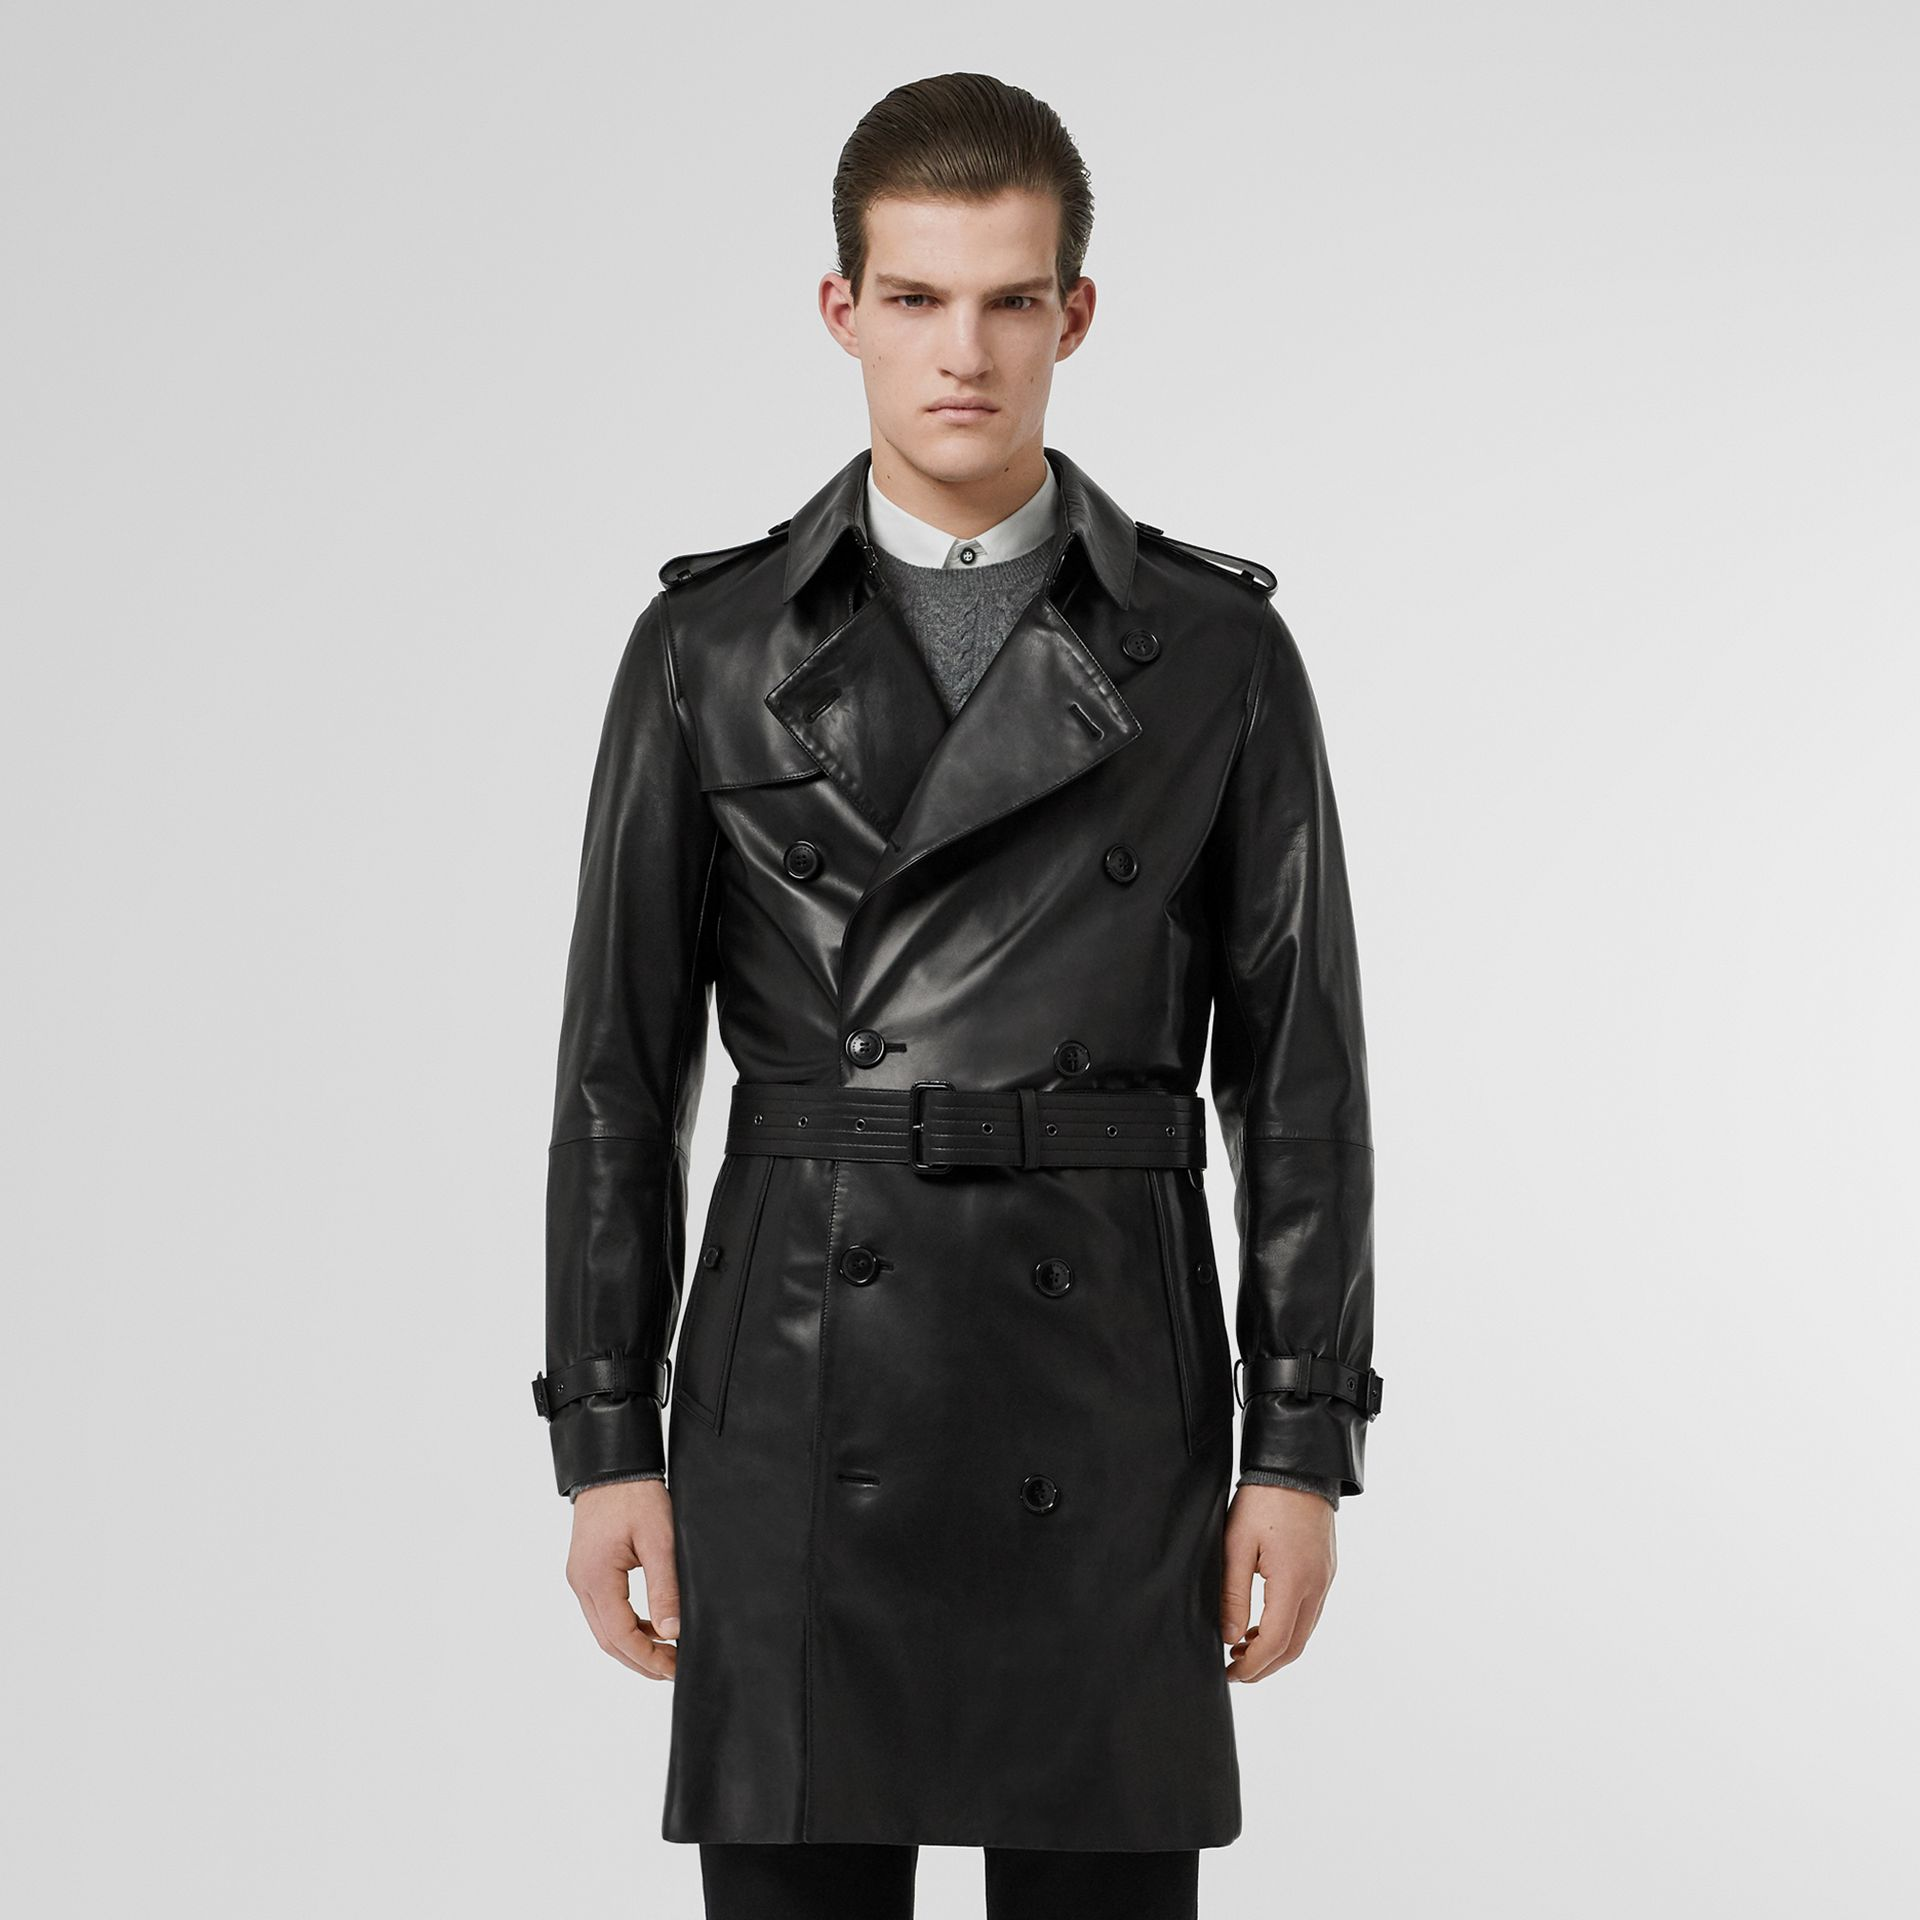 Lambskin Trench Coat in Black - Men | Burberry United States - gallery image 6